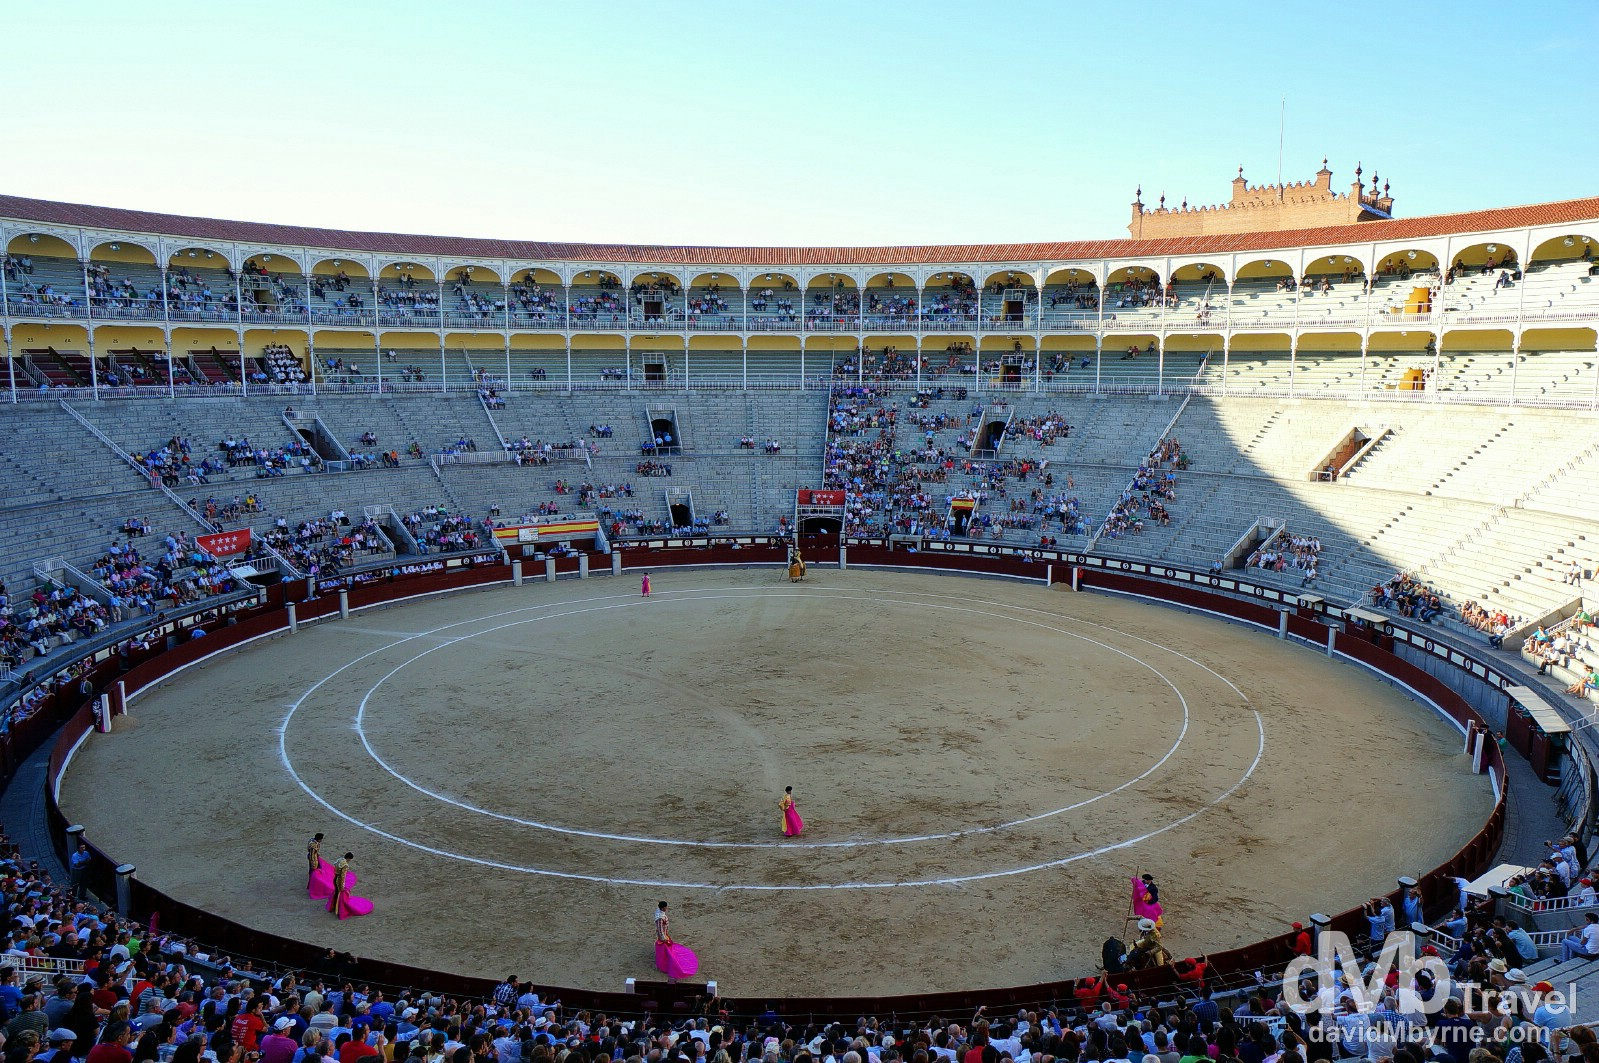 Plaza de Toros bullring, Las Ventas, Madrid, Spain. June 15th, 2014.